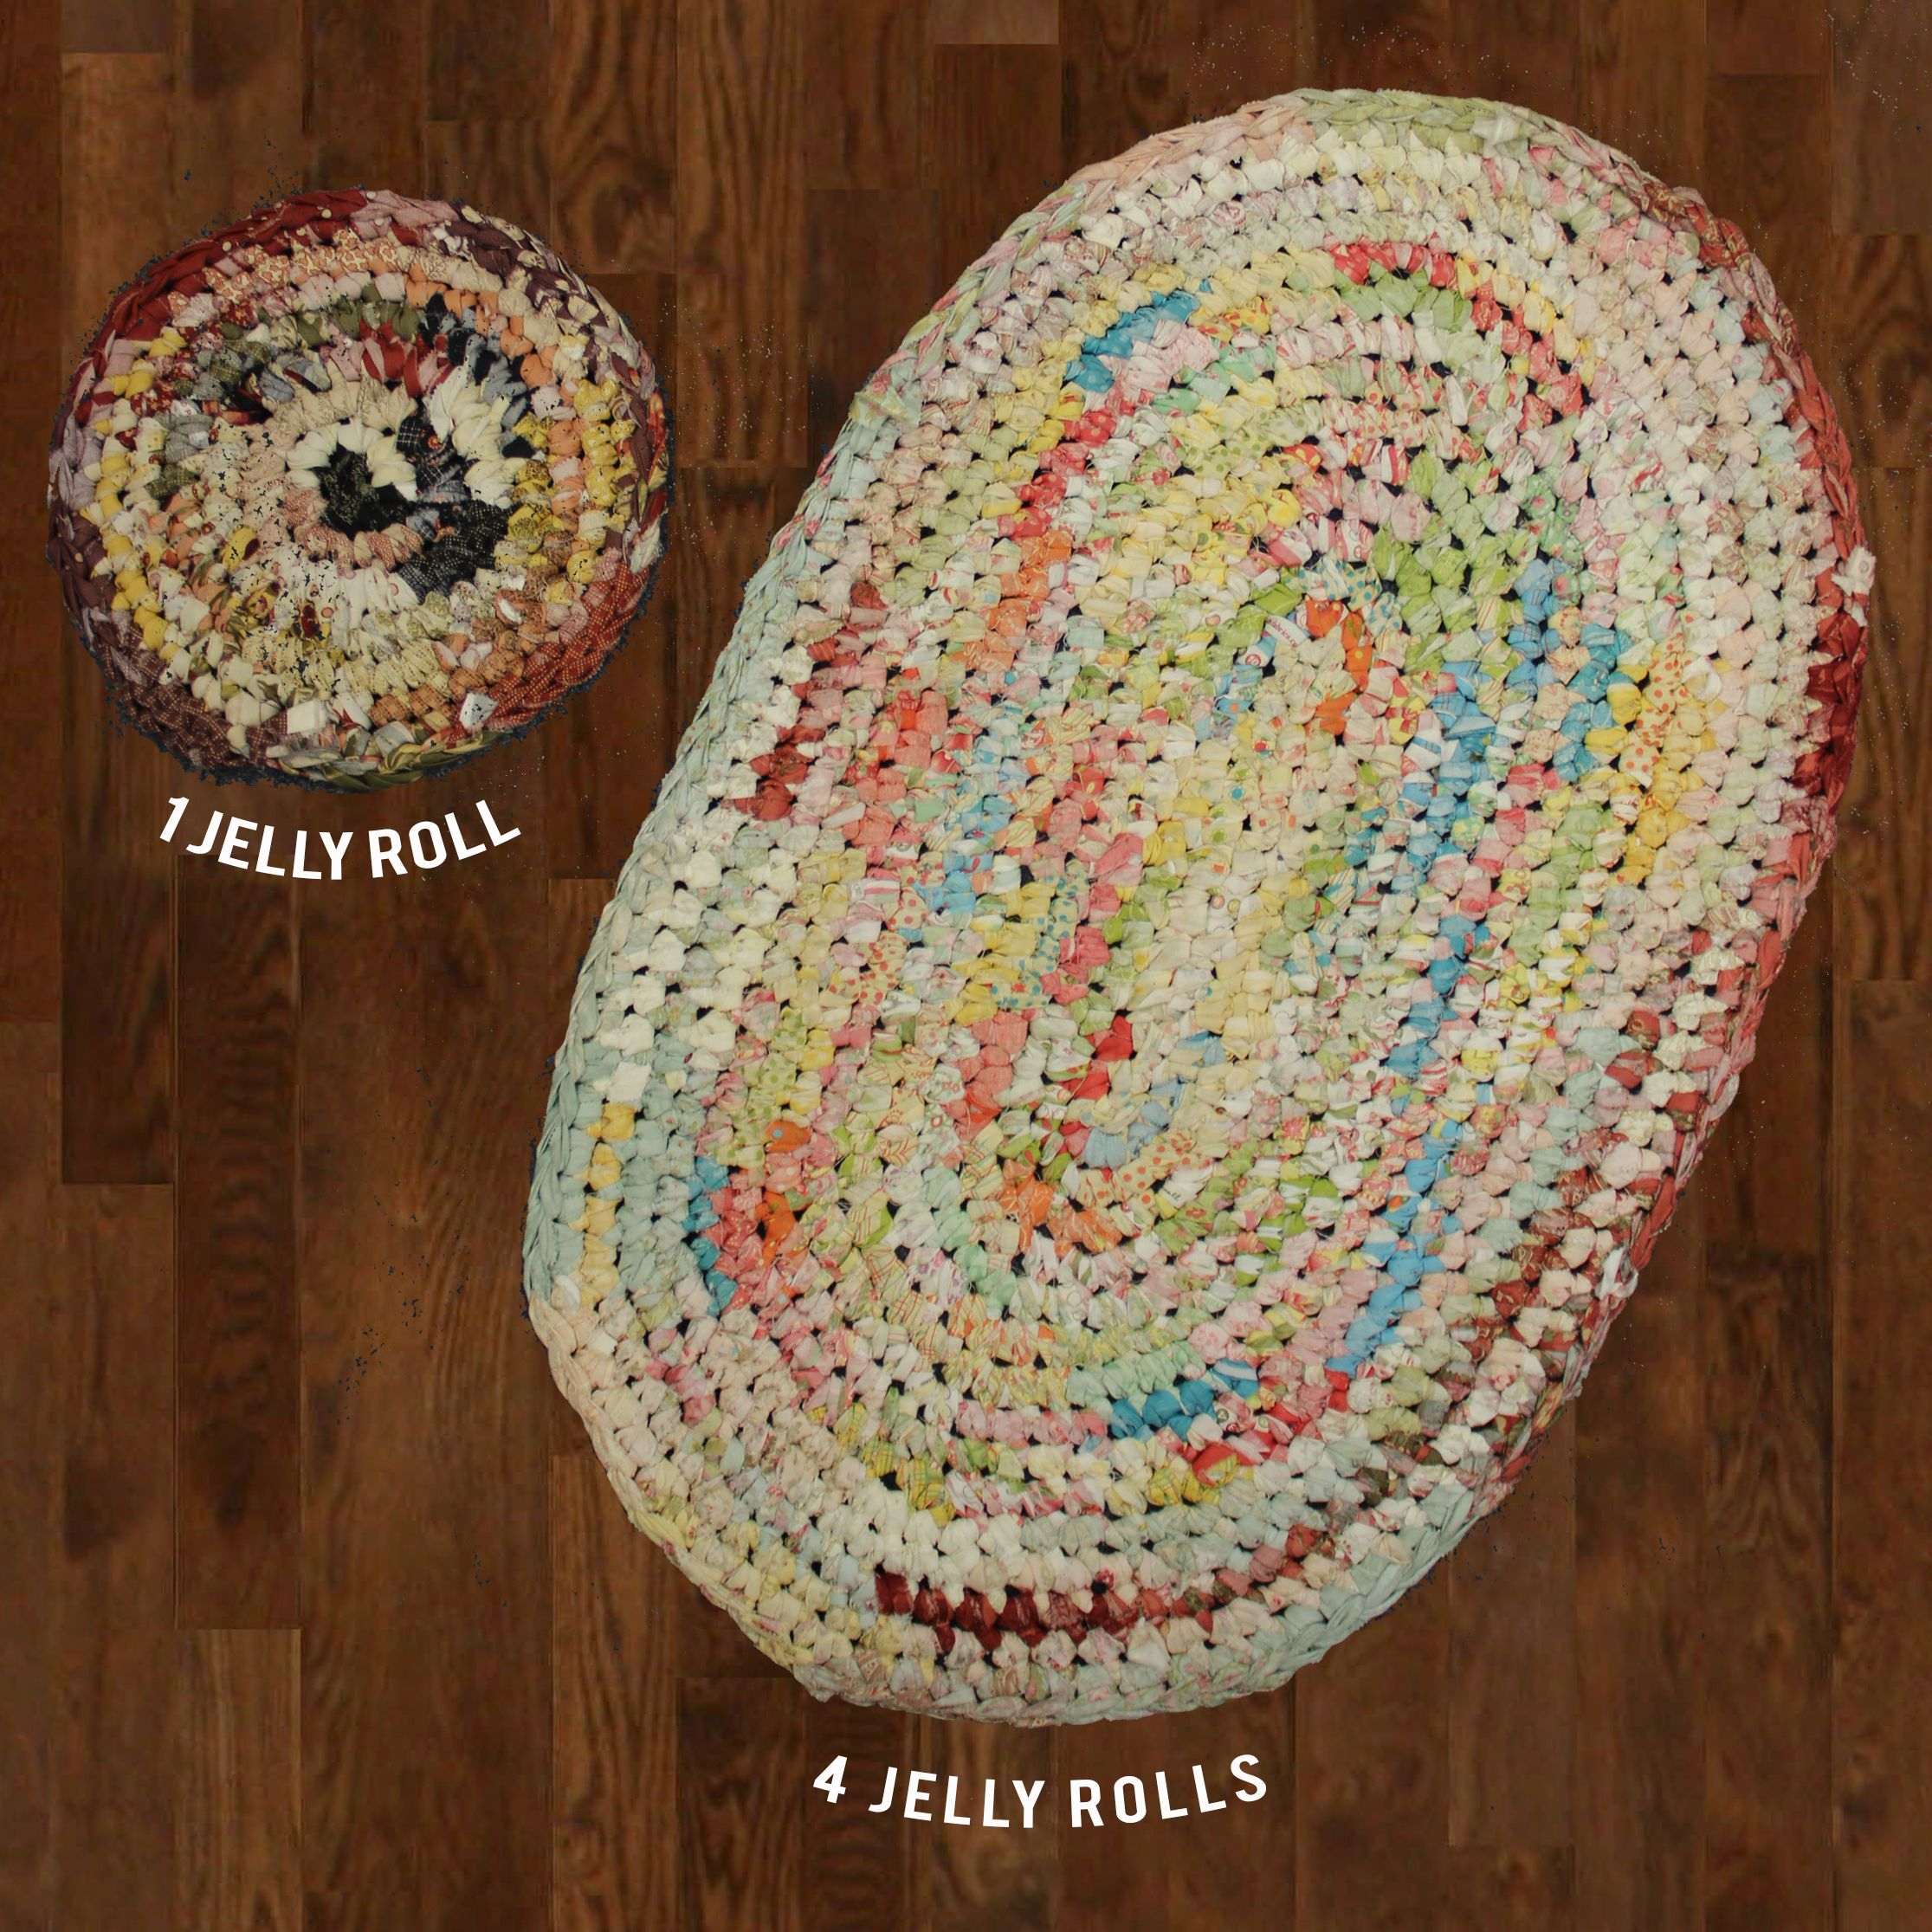 Moda Crochet Rugs Learn How To Make A Rug From Jelly